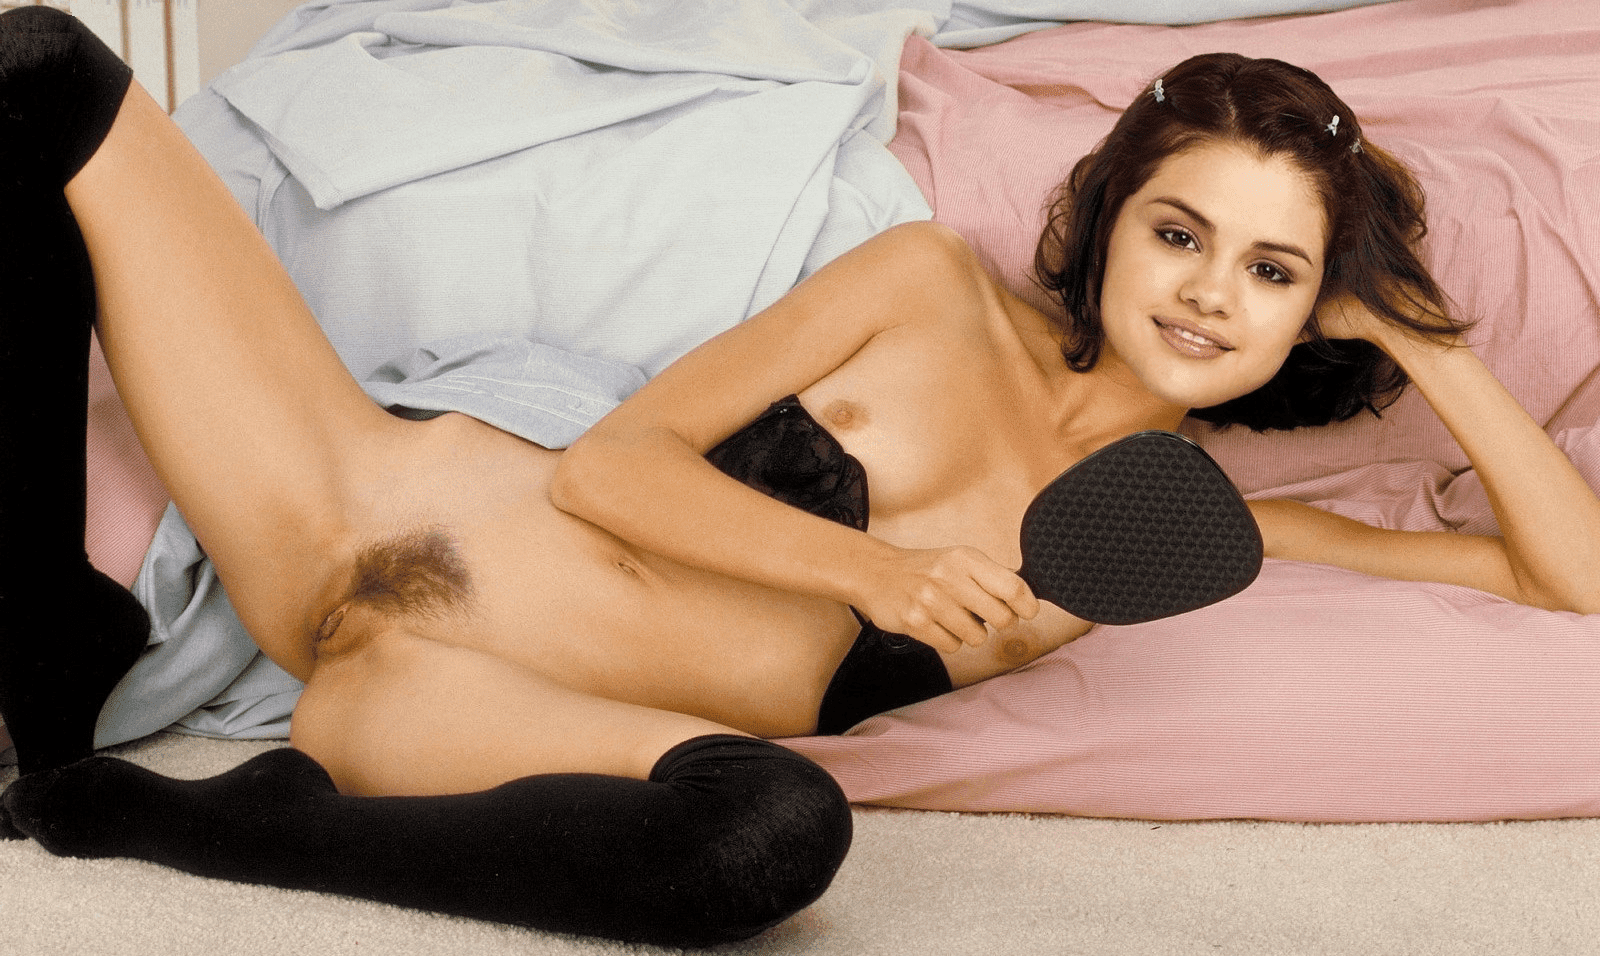 Selena gomez crotch shot-1882